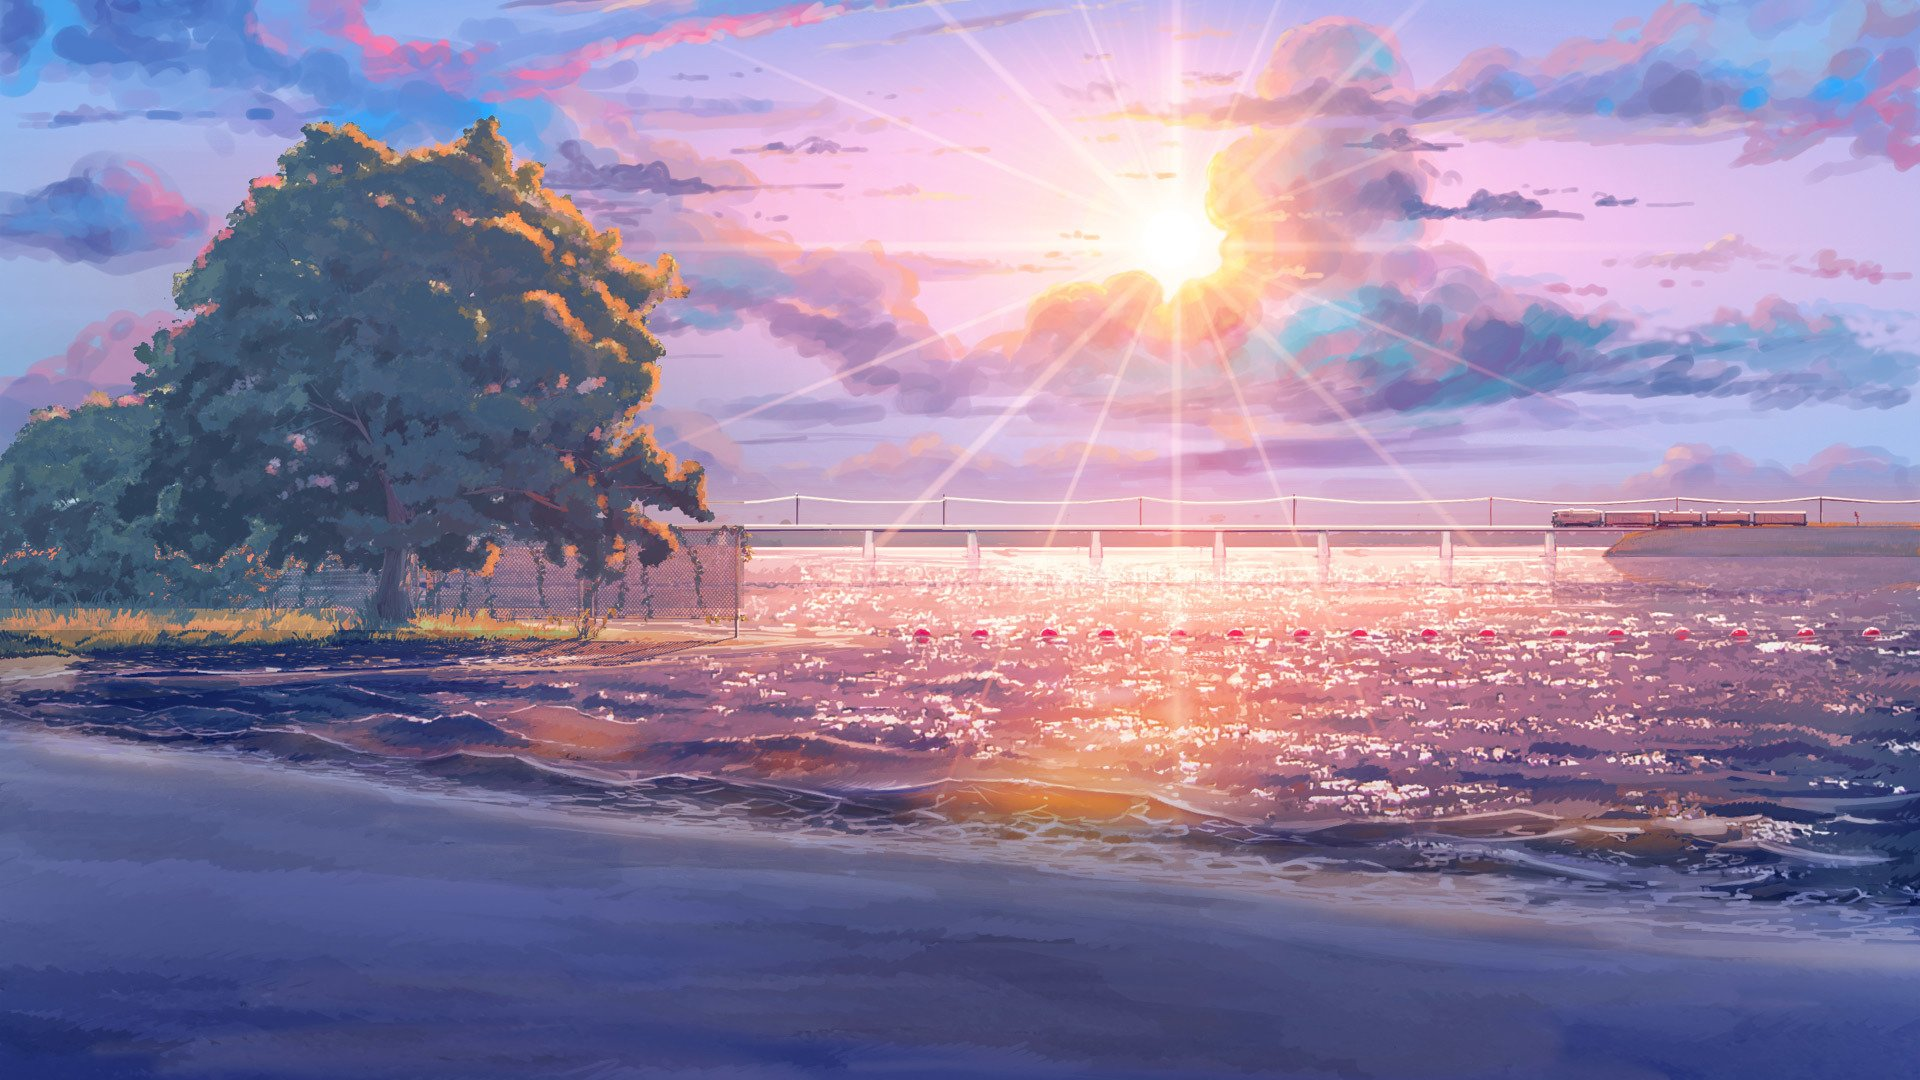 Collection of Anime Beach Wallpaper on HDWallpapers